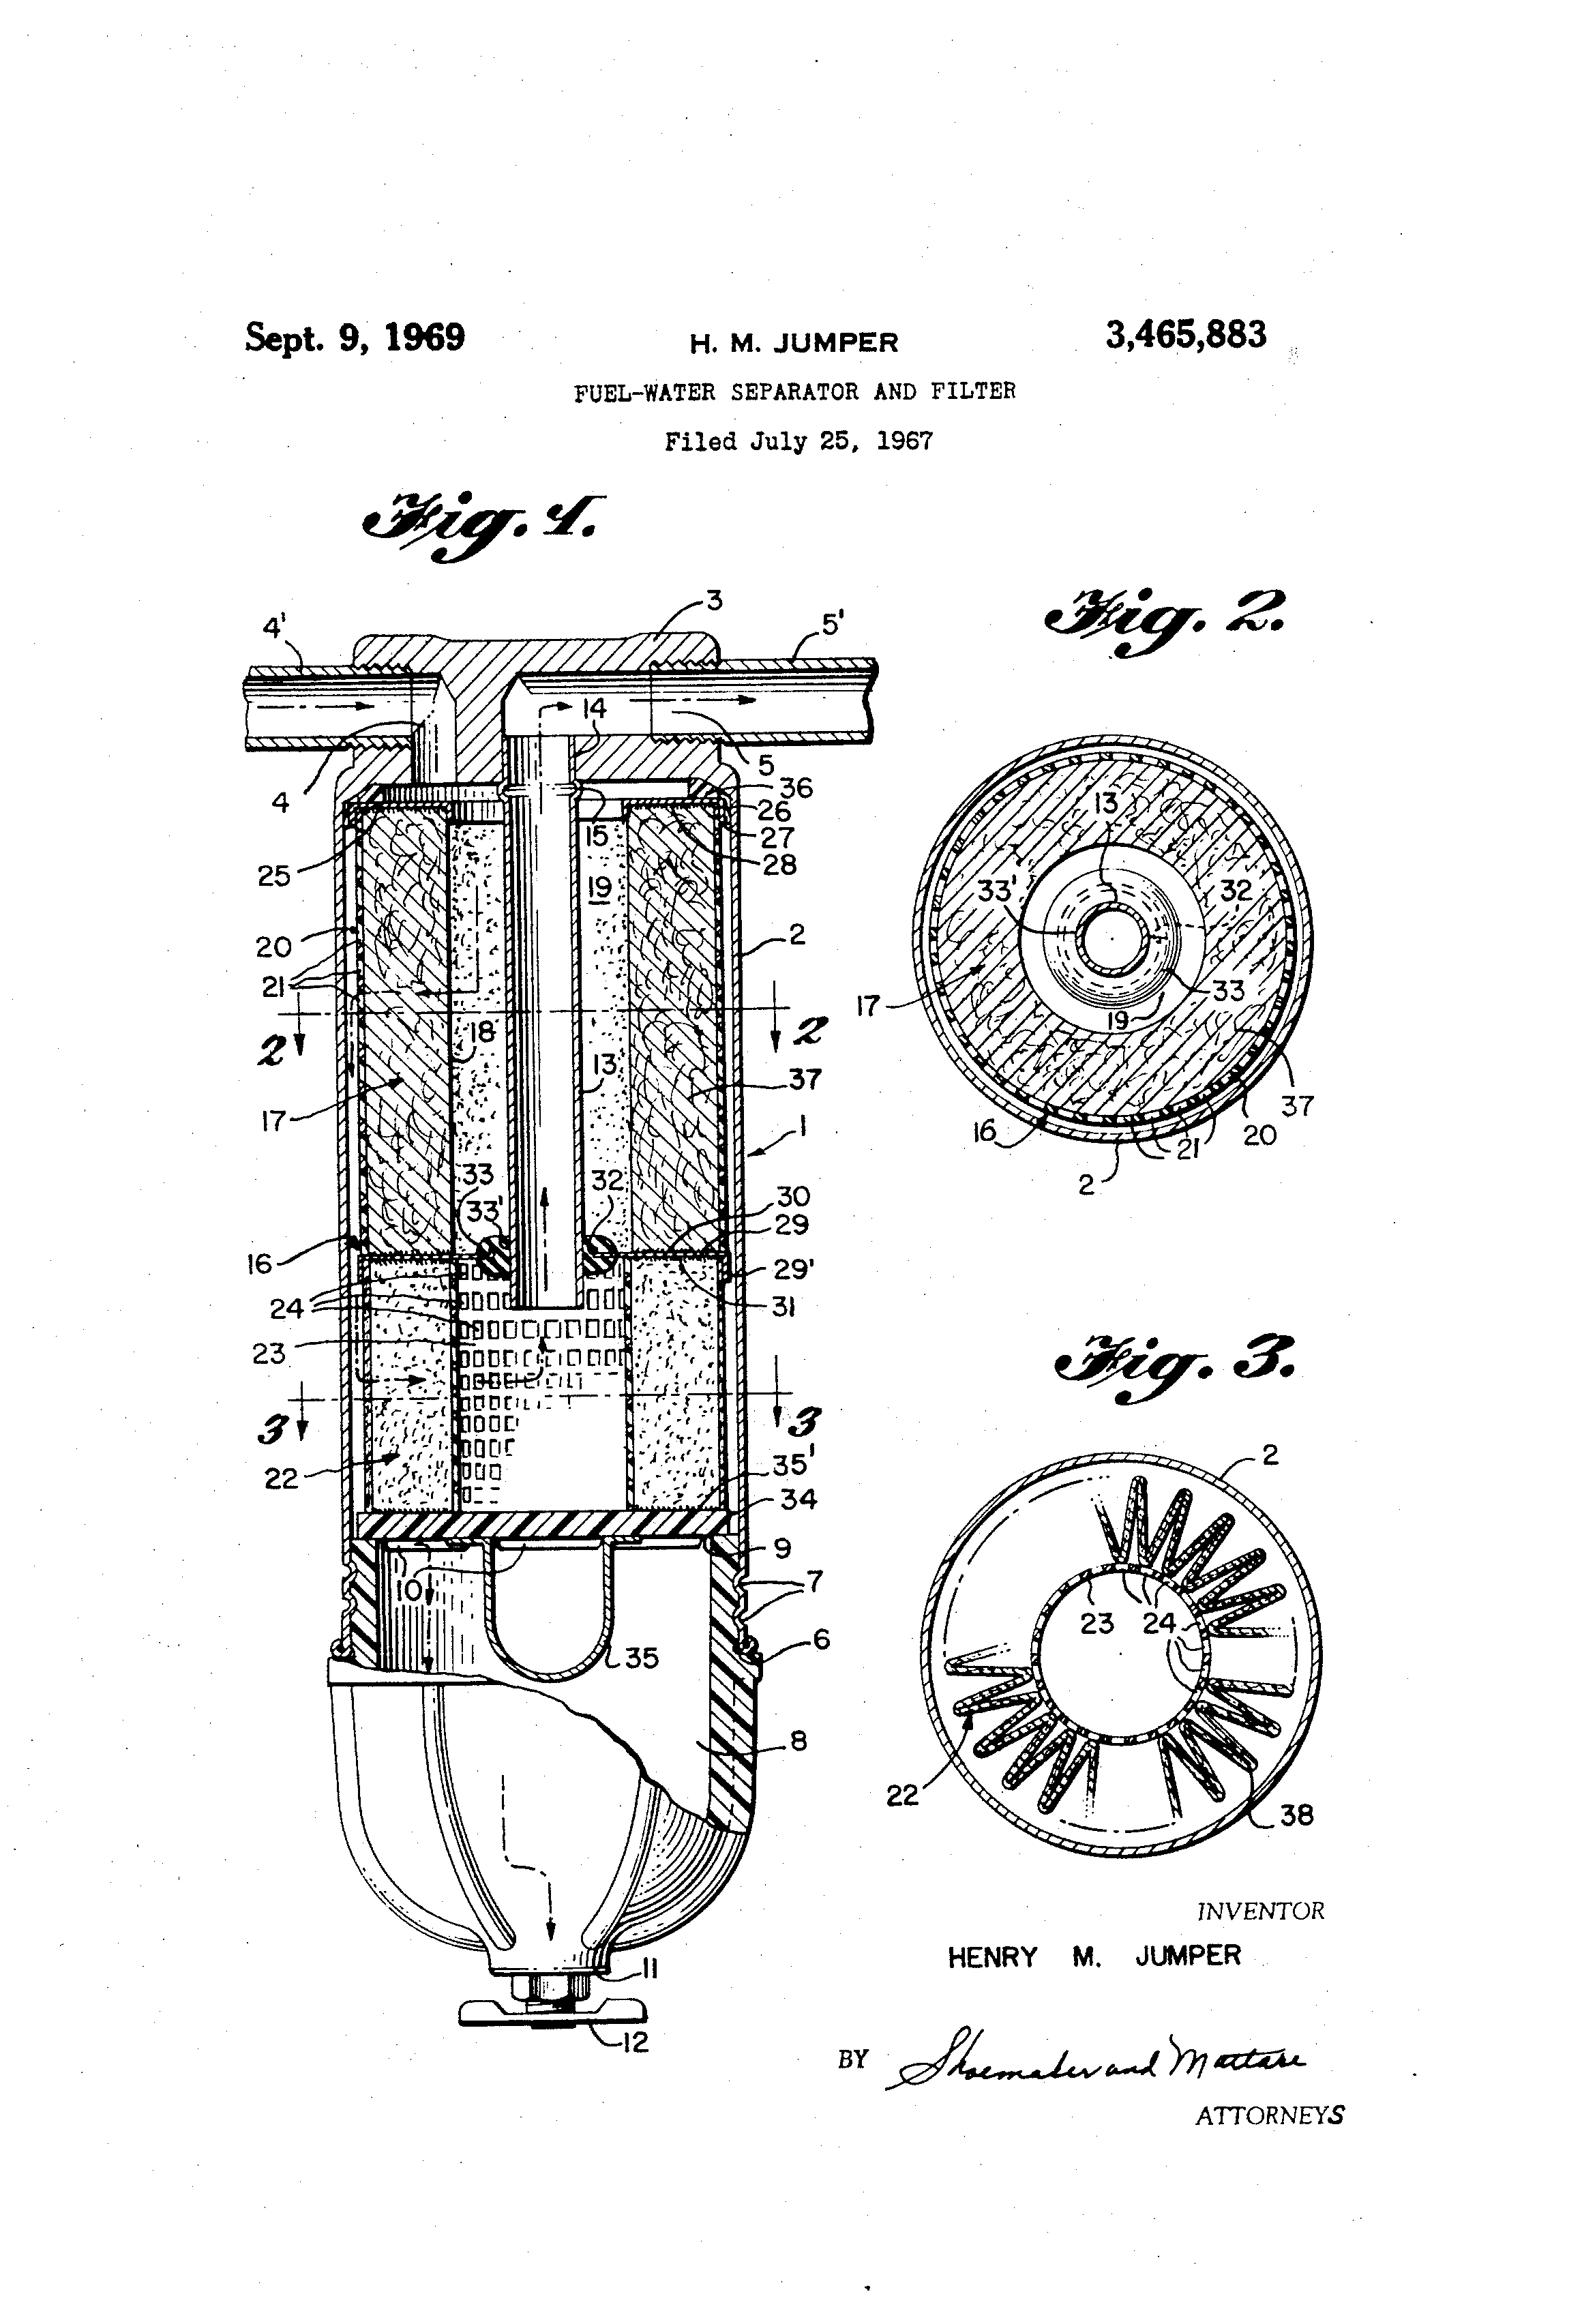 patent us3465883 - fuel-water separator and filter